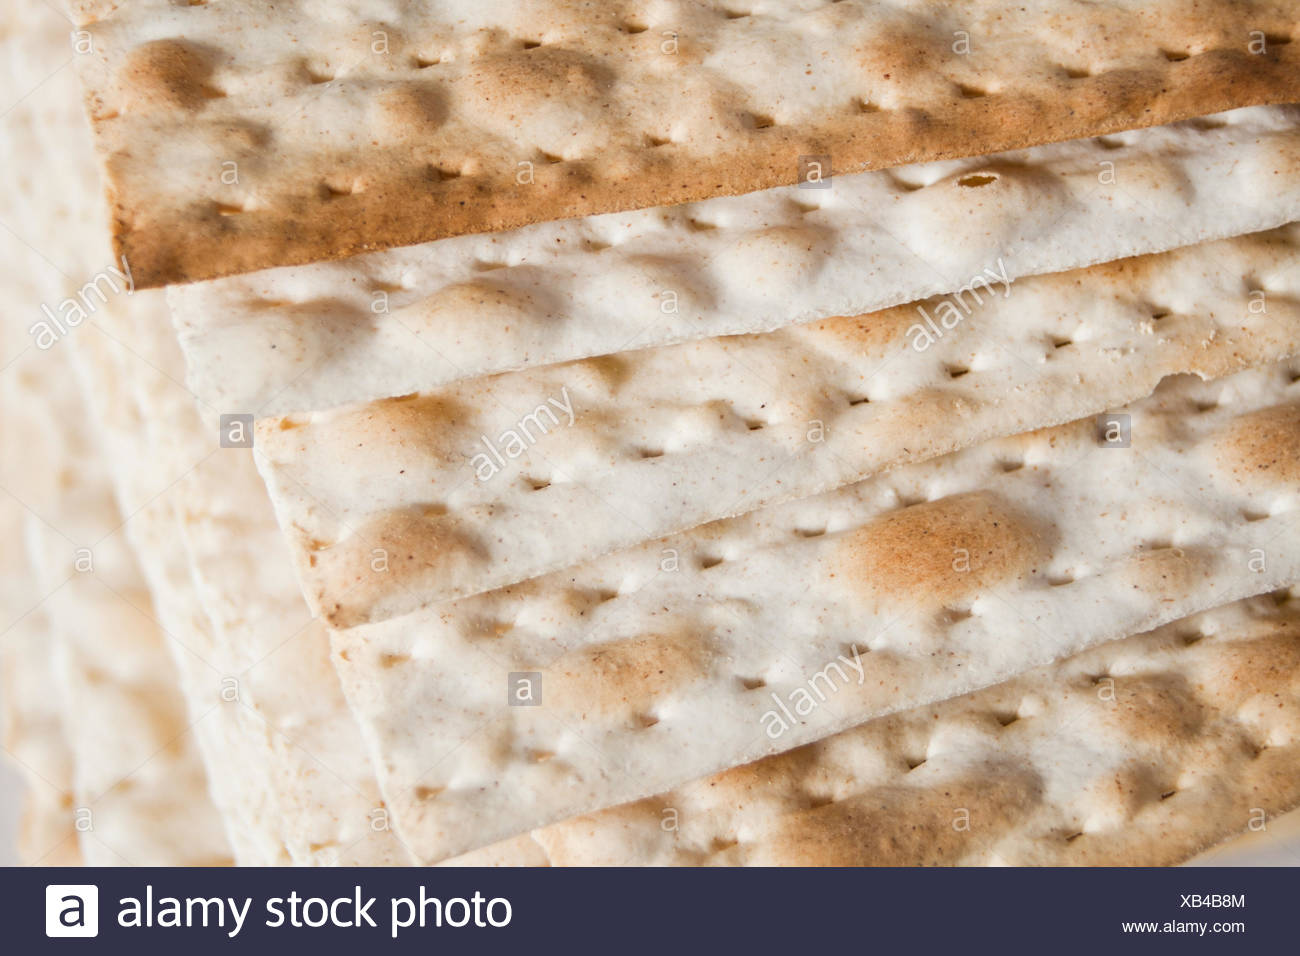 food, aliment, bread, religious, sweet, jewishness, judaism, plate, party, - Stock Image